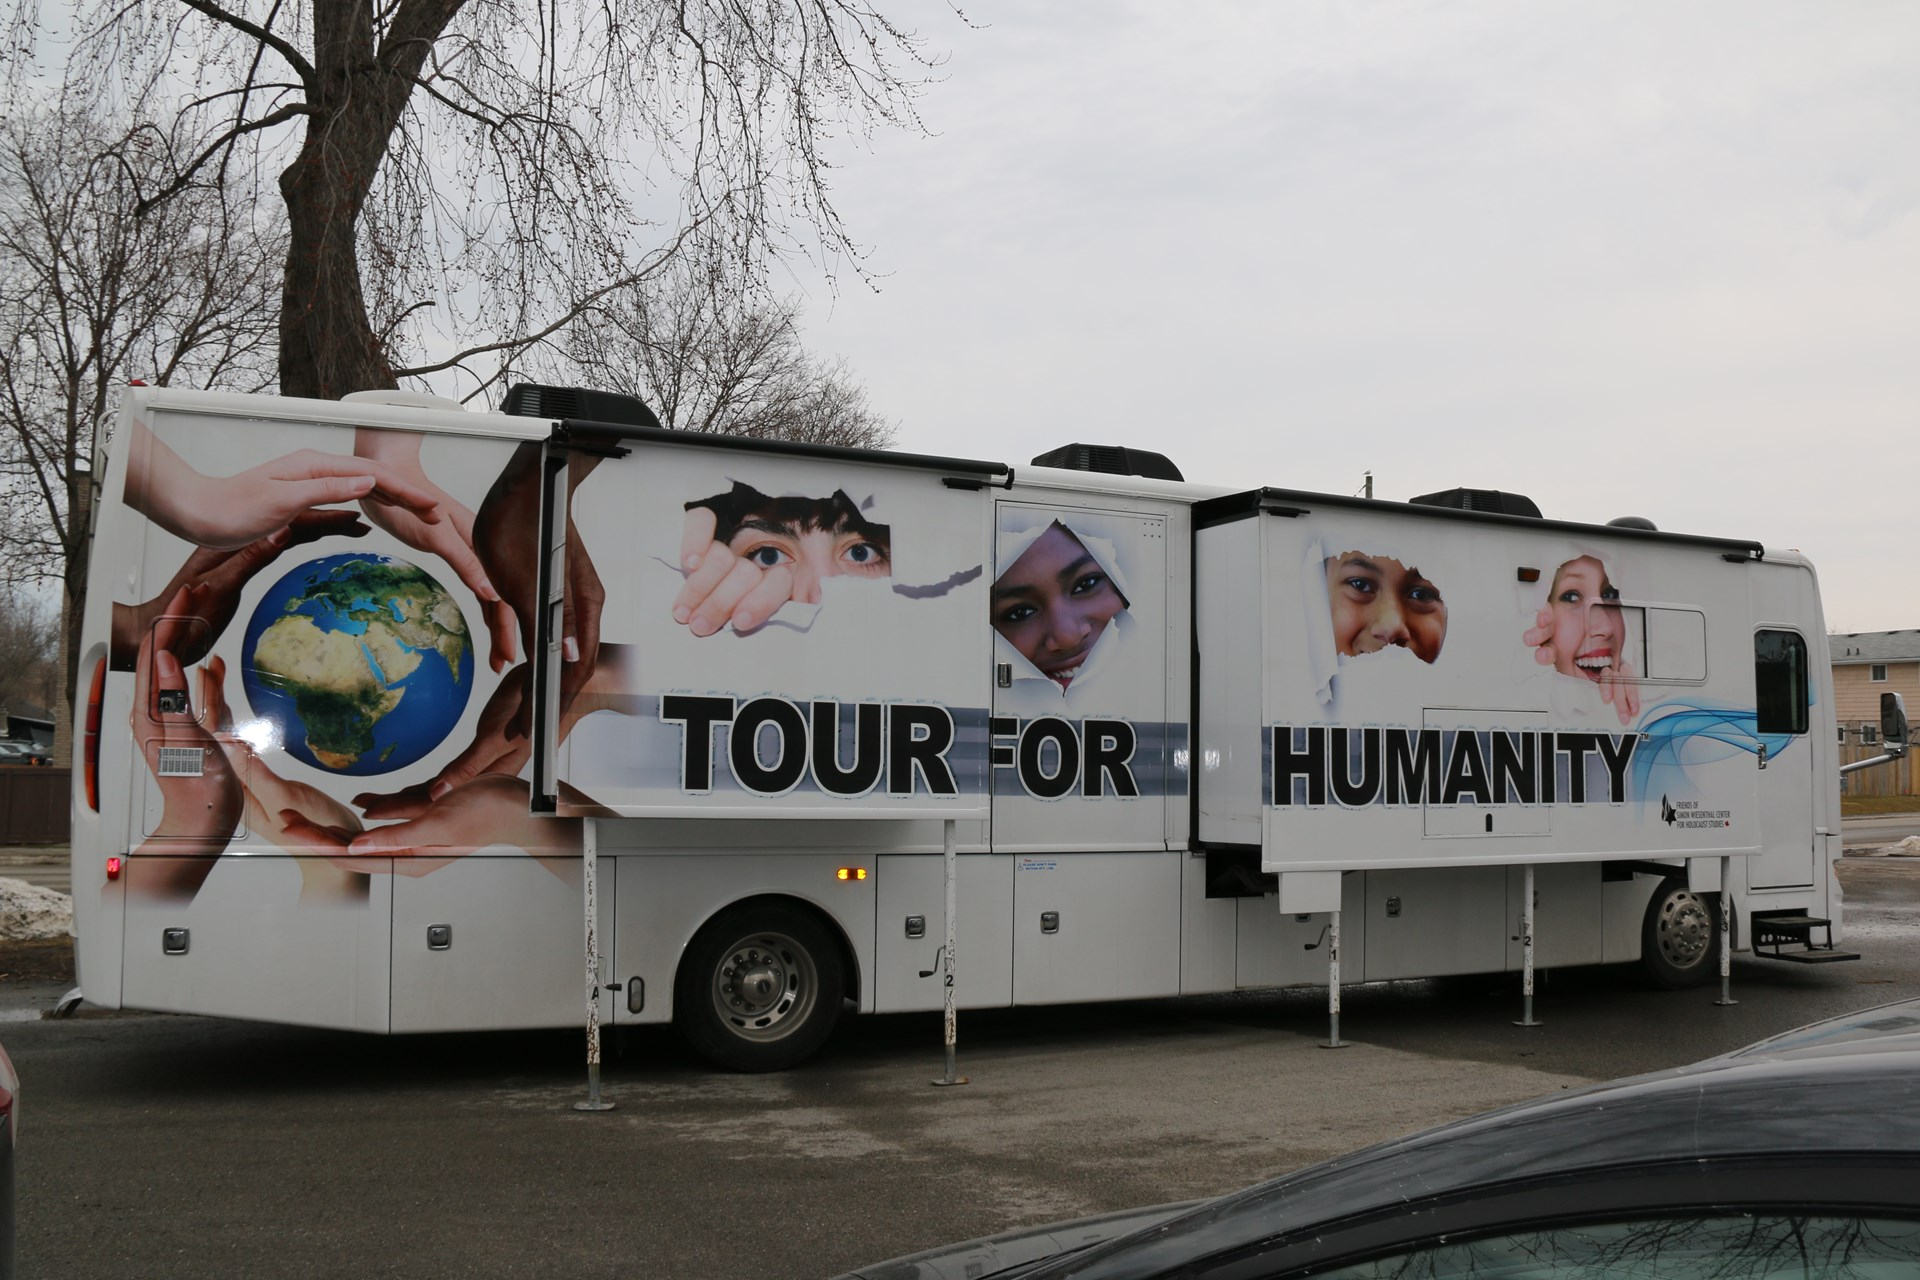 Tour for Humanity bus.